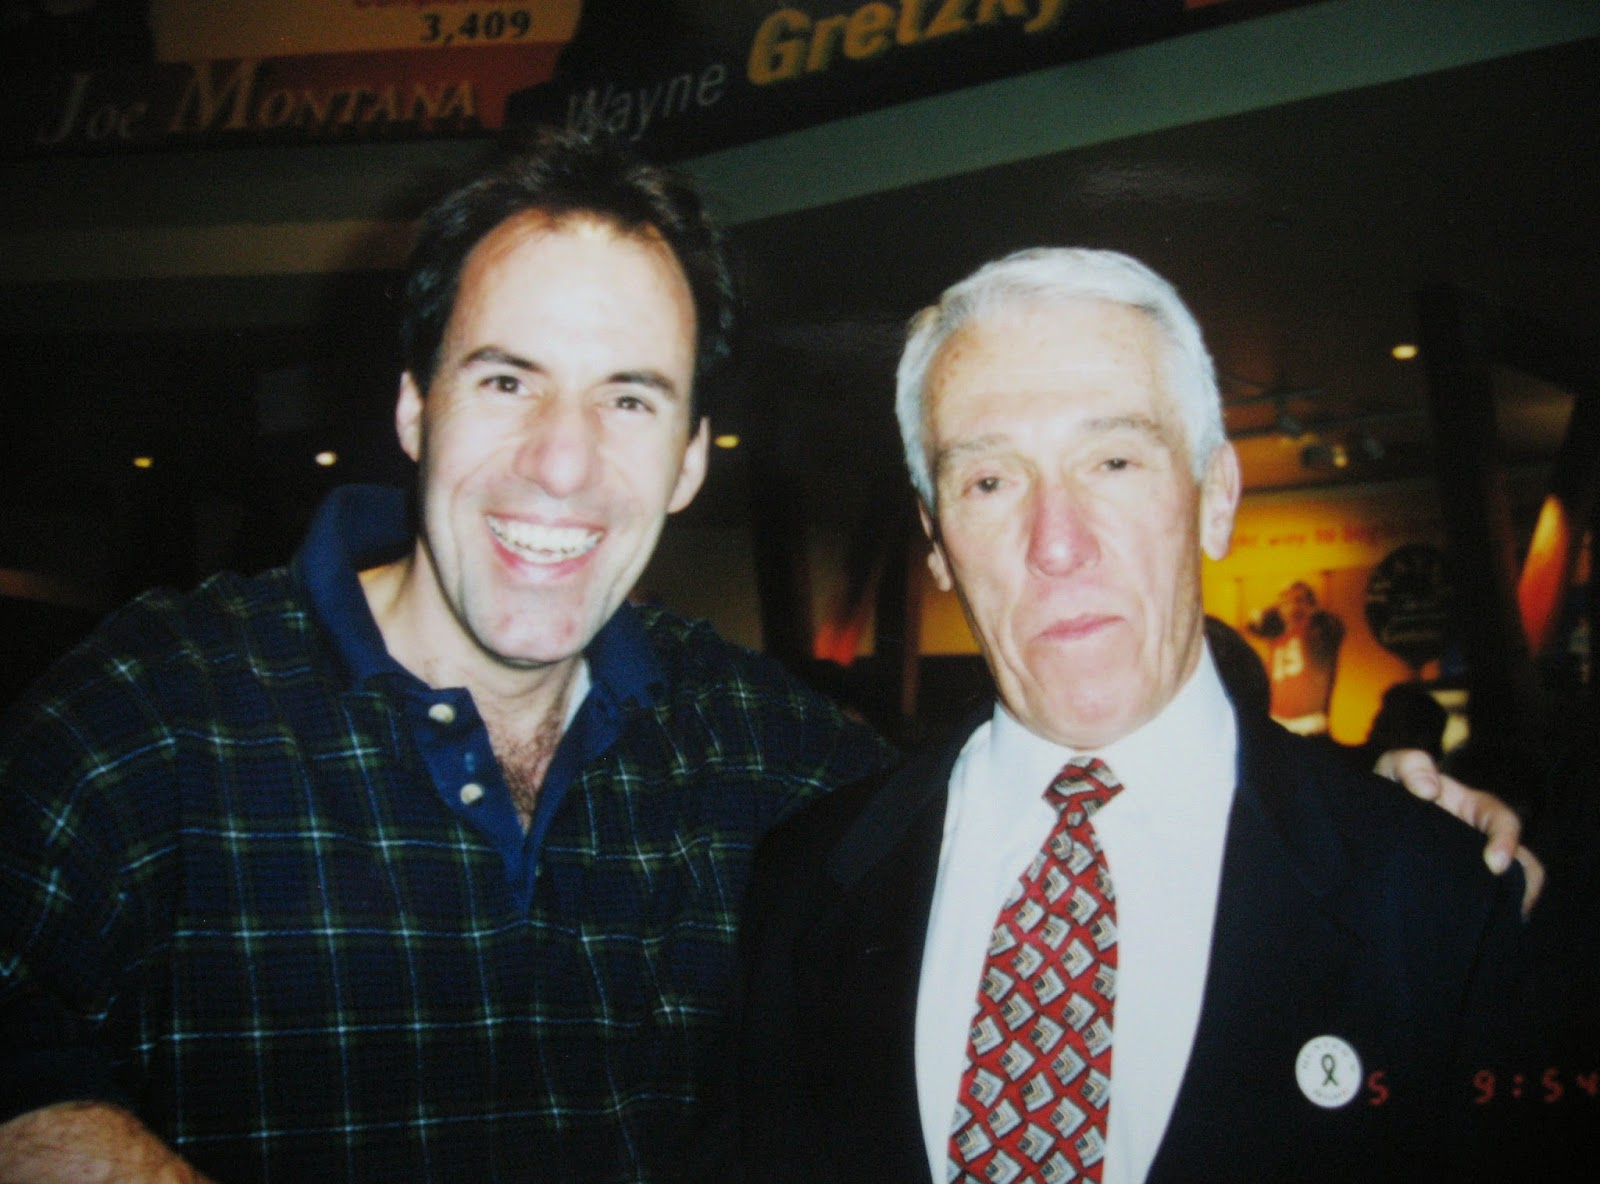 Coach Marv Levy was very happy to snap a few pics with us... very cool!